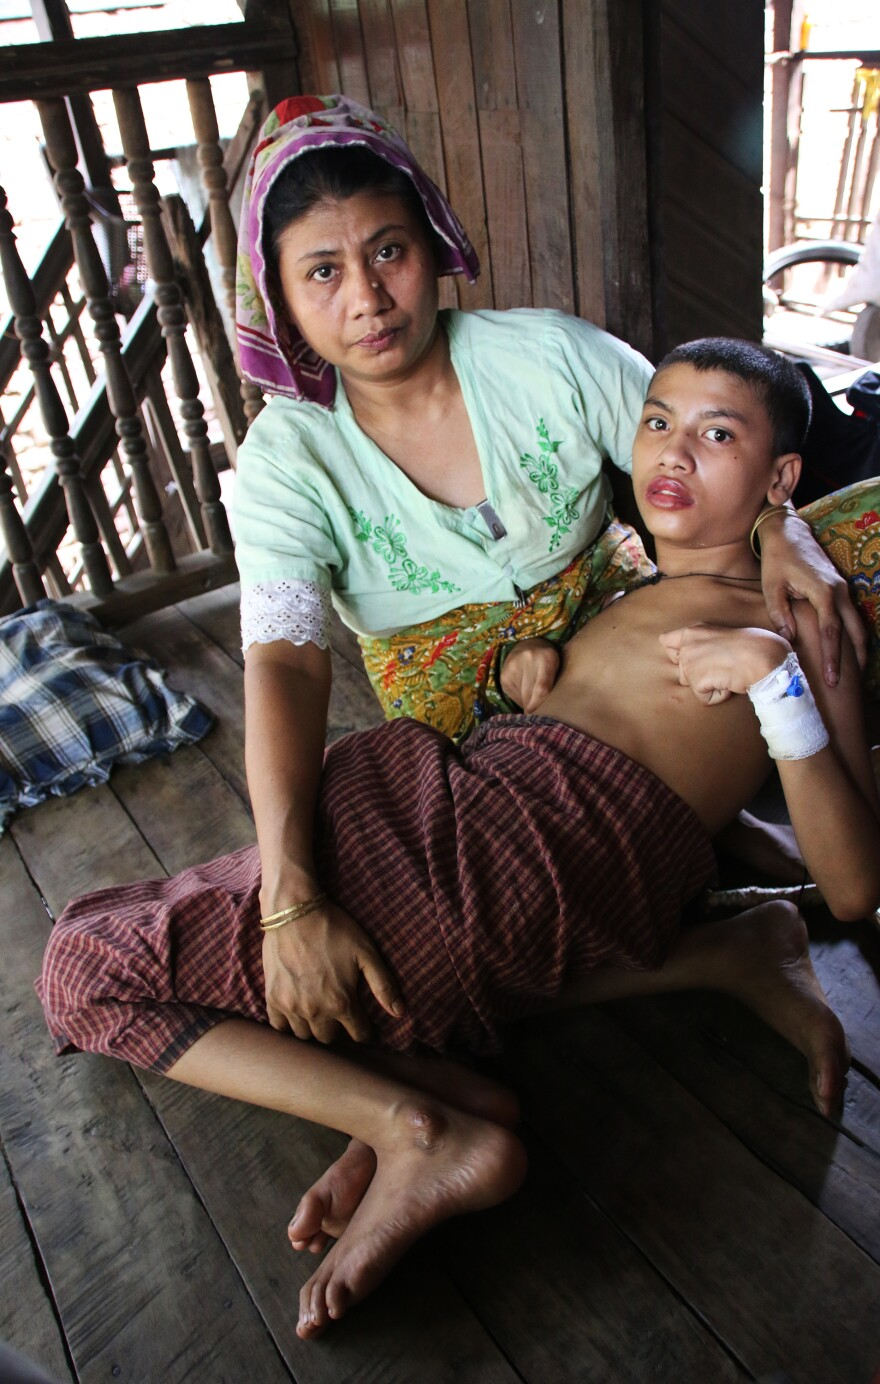 Zomir Hussein, 13, suffers from the effects of an accidental overdose of tuberculosis medicine. Because he is Rohingya, he is unable to go into Sittwe to the only hospital that can treat him. Most Rohingya are confined to camps for internally displaced persons, where there are few doctors.